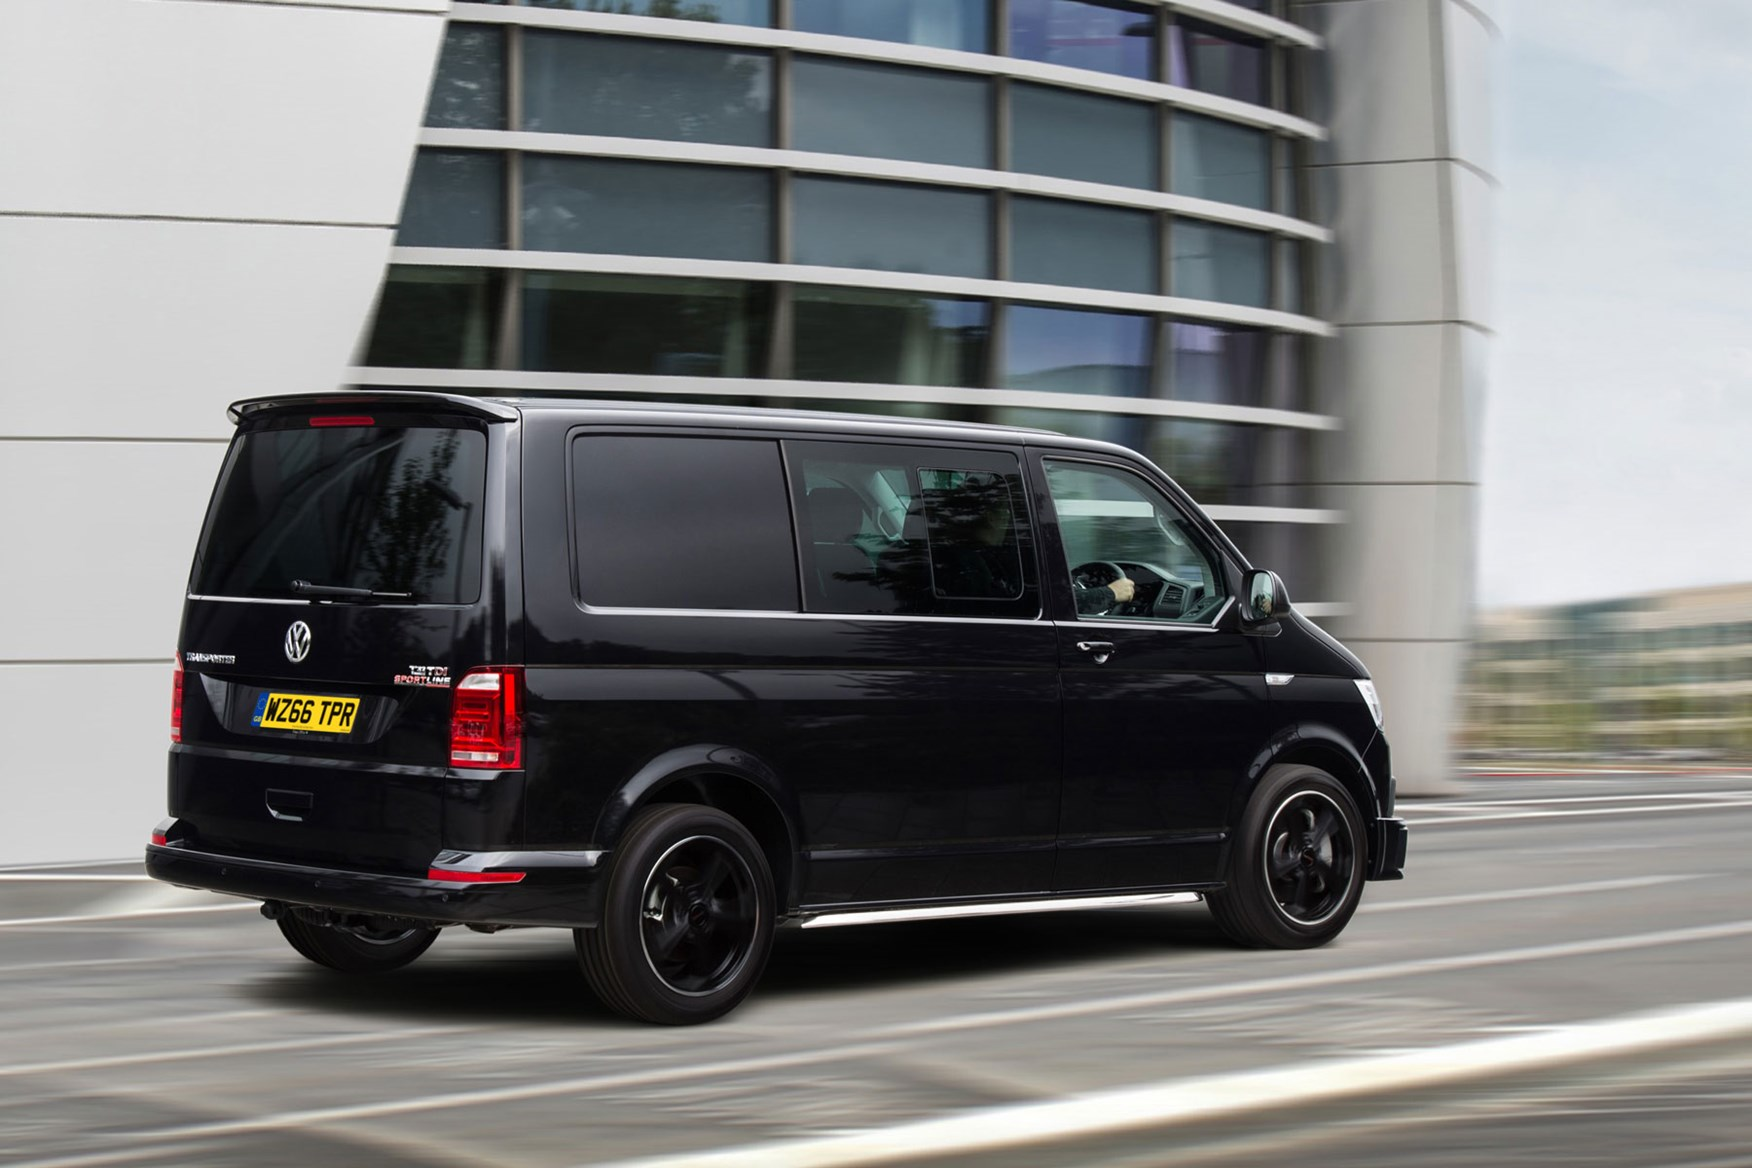 VW Transporter T6 Sportline review - kombi, black, rear view driving